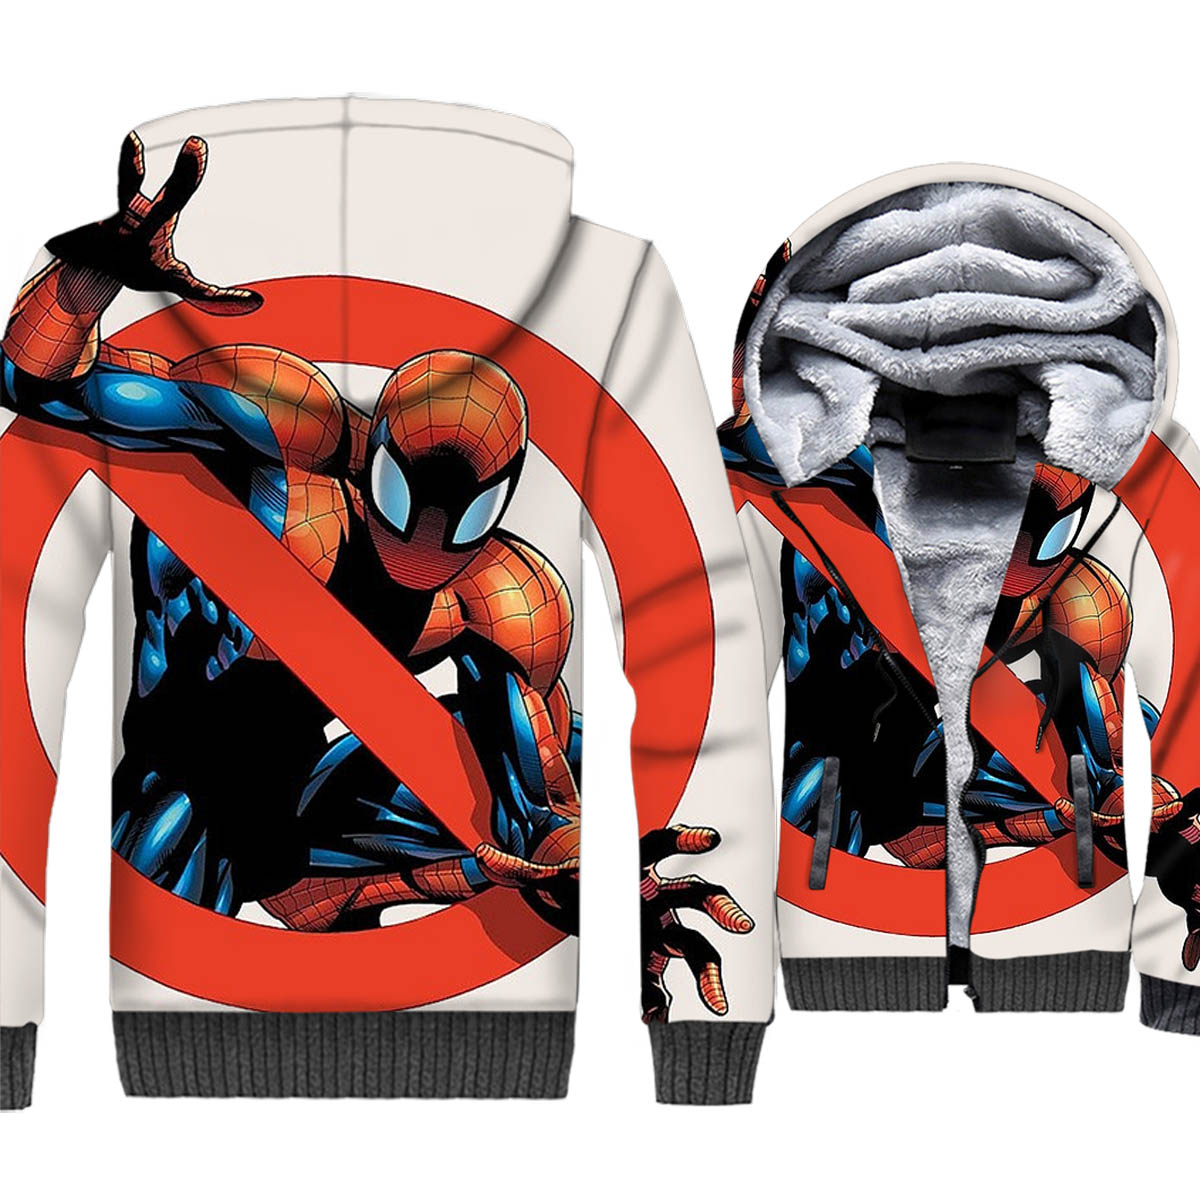 Spiderman Hoodies Men Super Hero Jacket 3D Cool Sweatshirt 2018 Winter Thick Fleece Warm Zipper Coat Streetwear Brand Clothing